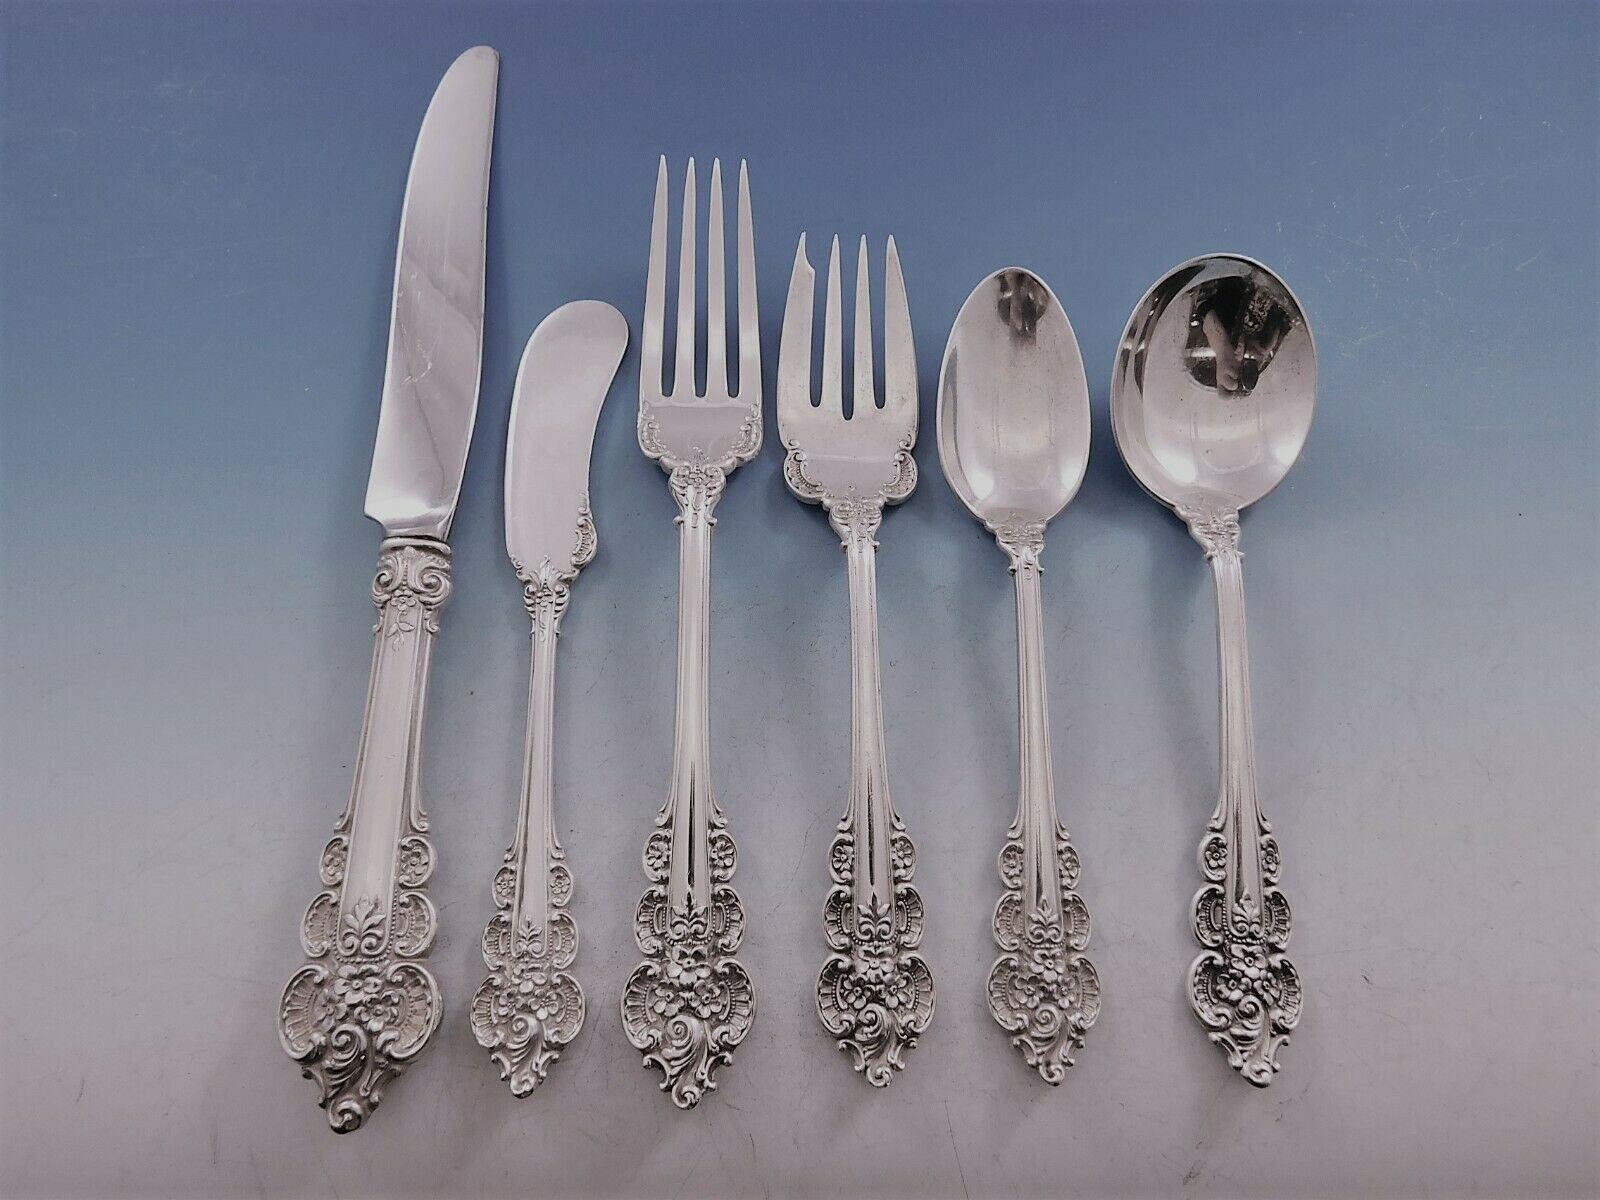 Primary image for Botticelli by Frank Whiting Sterling Silver Flatware Set Service 80 pieces